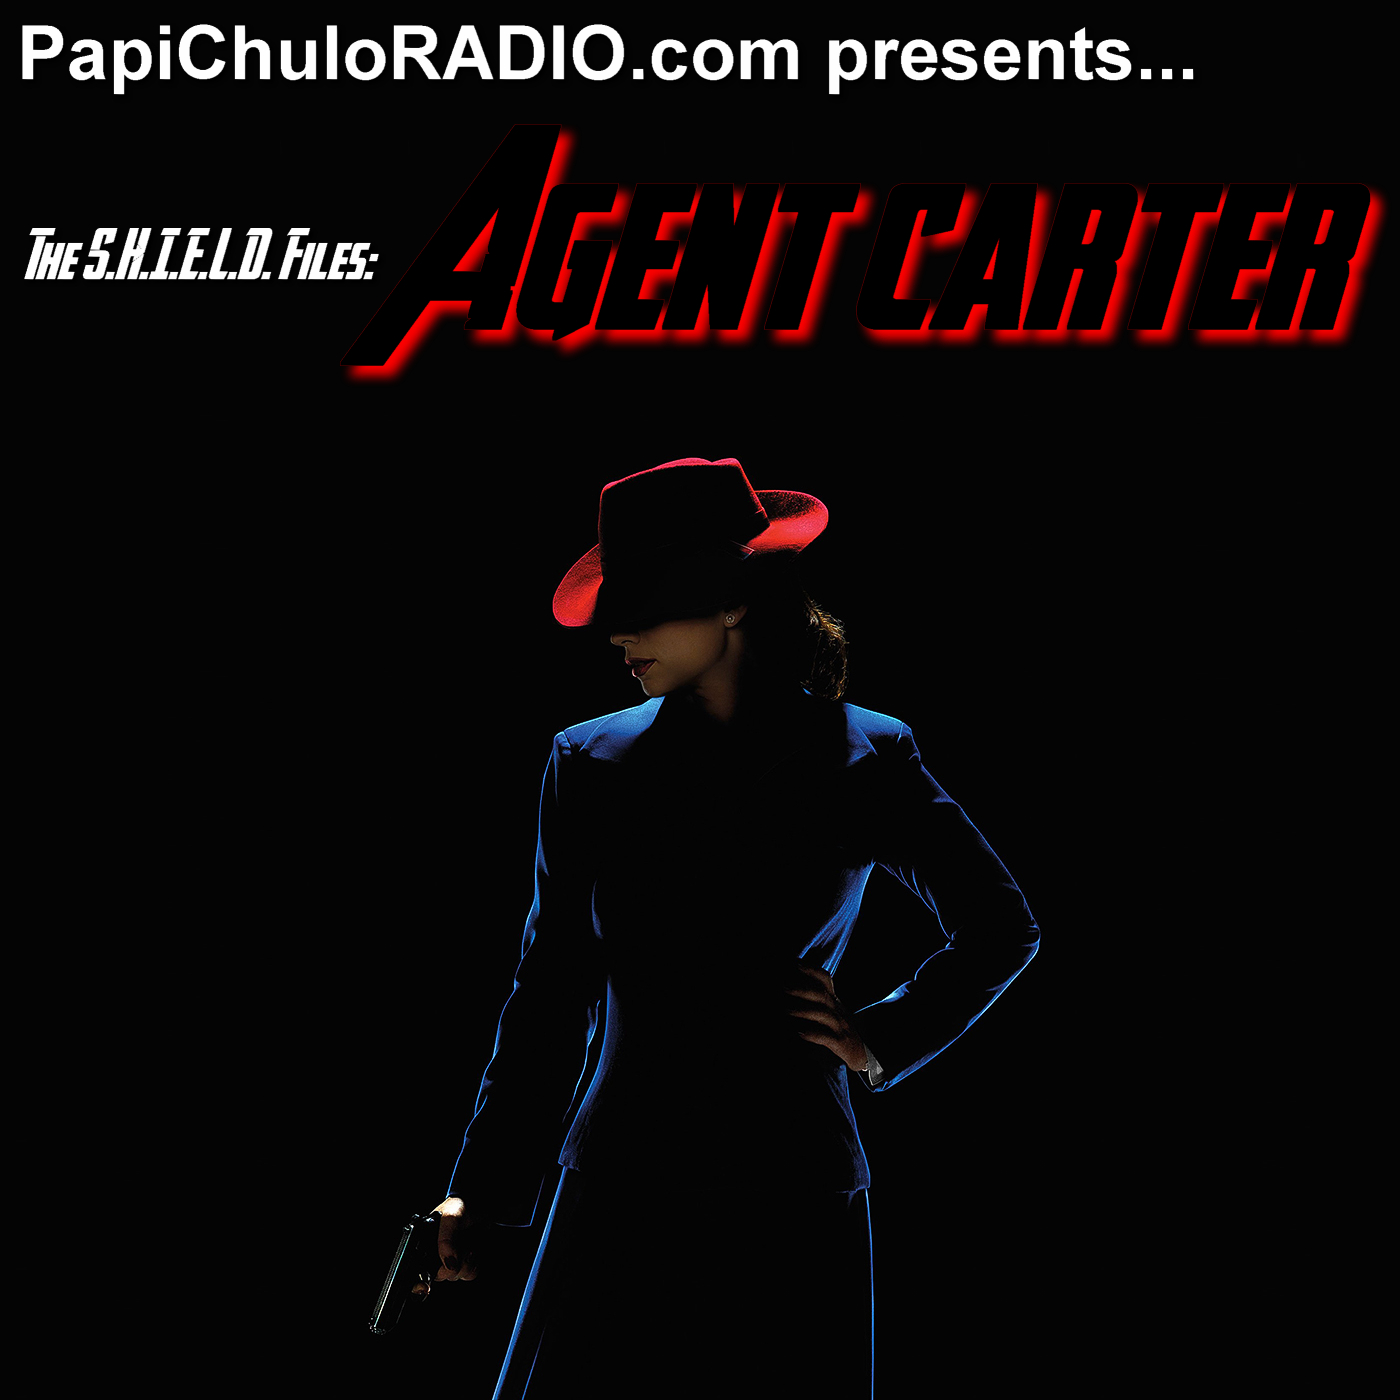 The S H I E L D  Files: AGENT CARTER – Papi Chulo RADIO